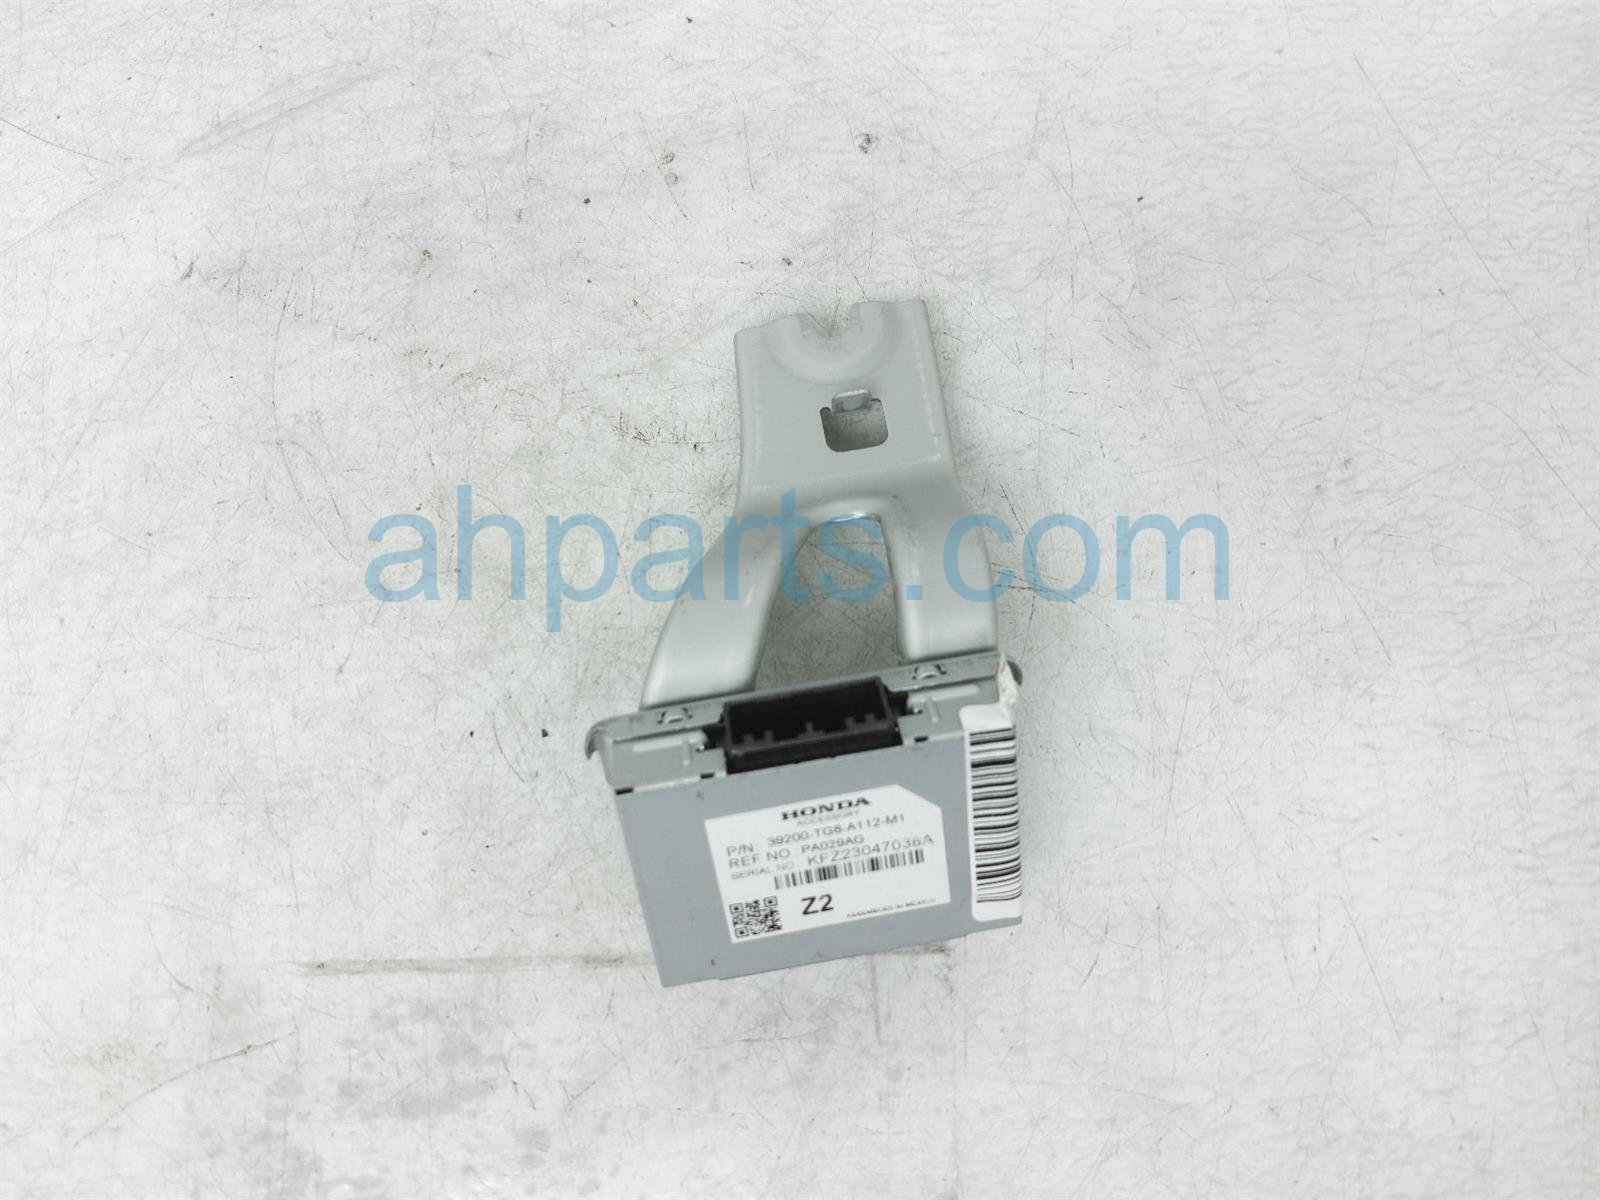 2019 Honda Pilot Active Noise Control Unit 39200 TG8 A11 Replacement